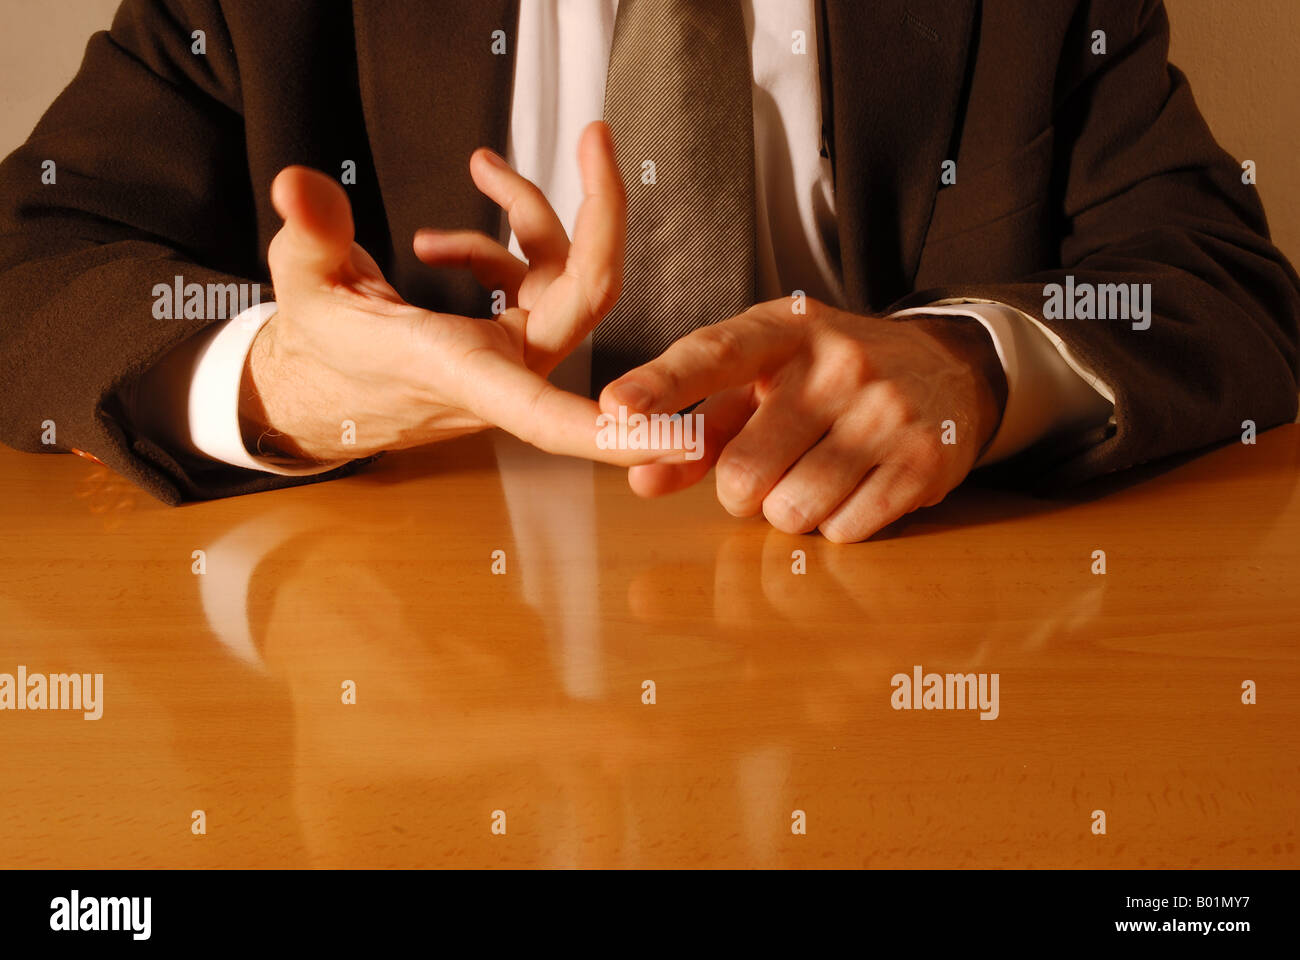 Hand gestures: counting with fingers. - Stock Image